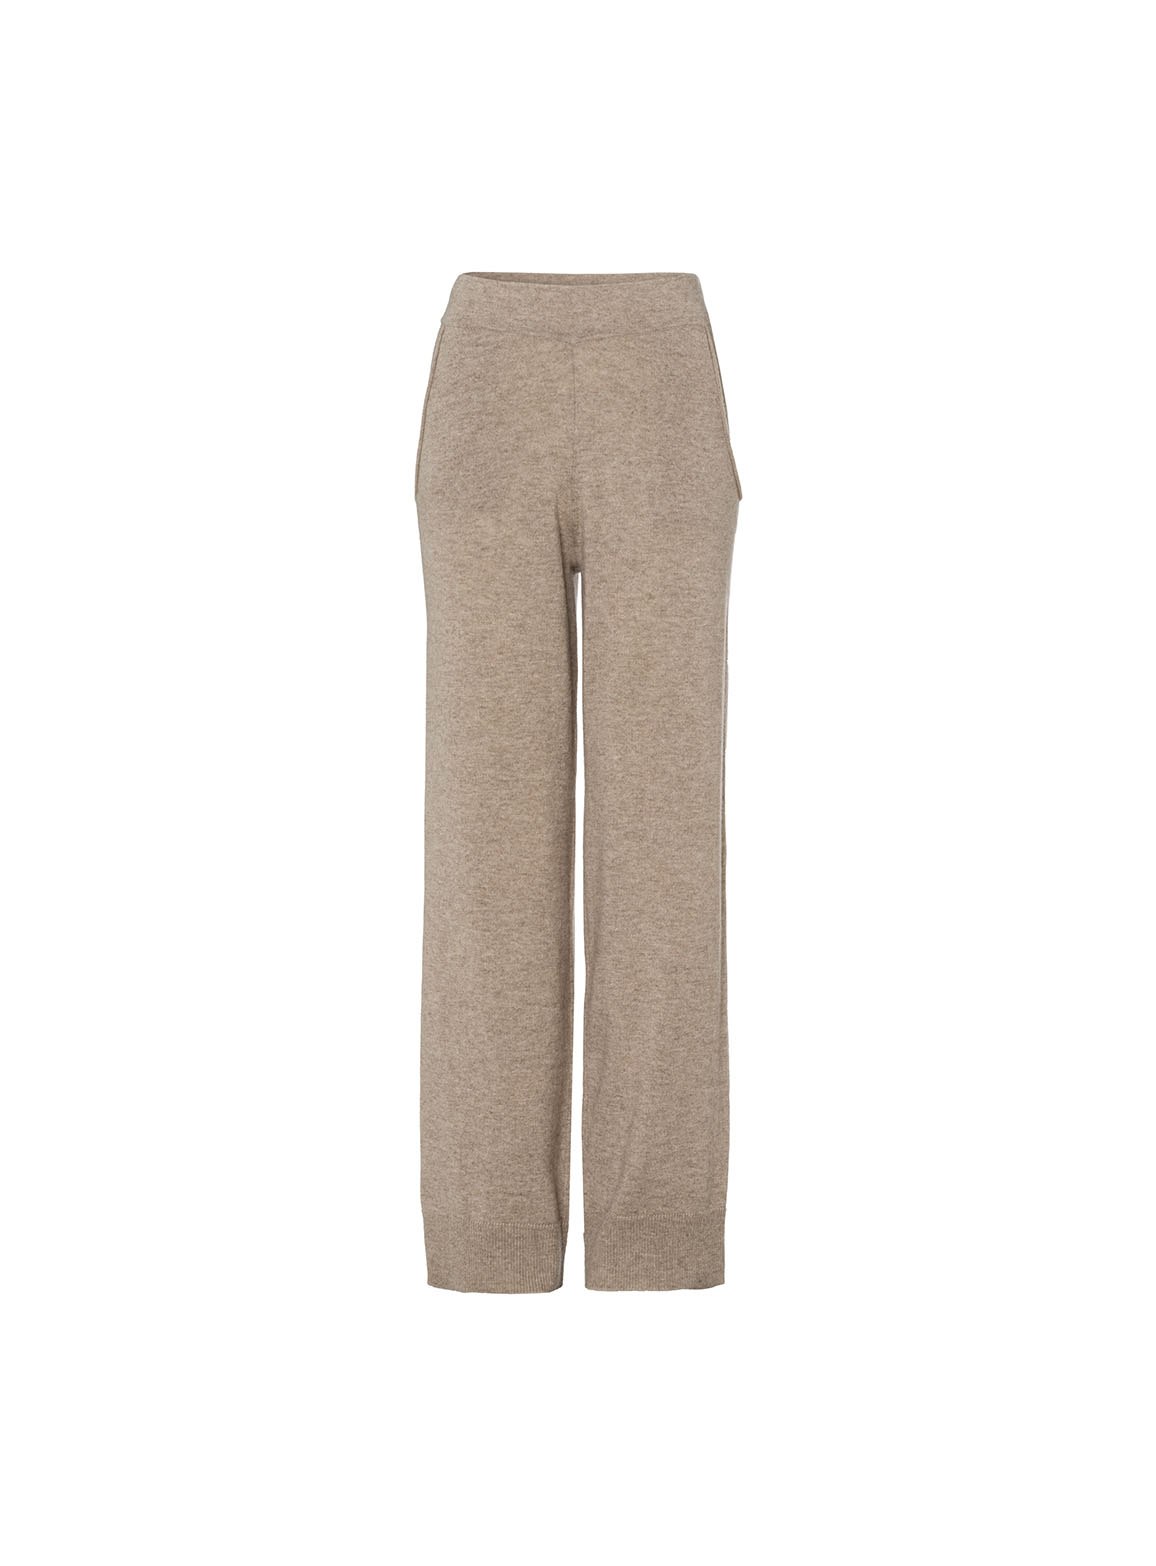 Straight pants in pure design